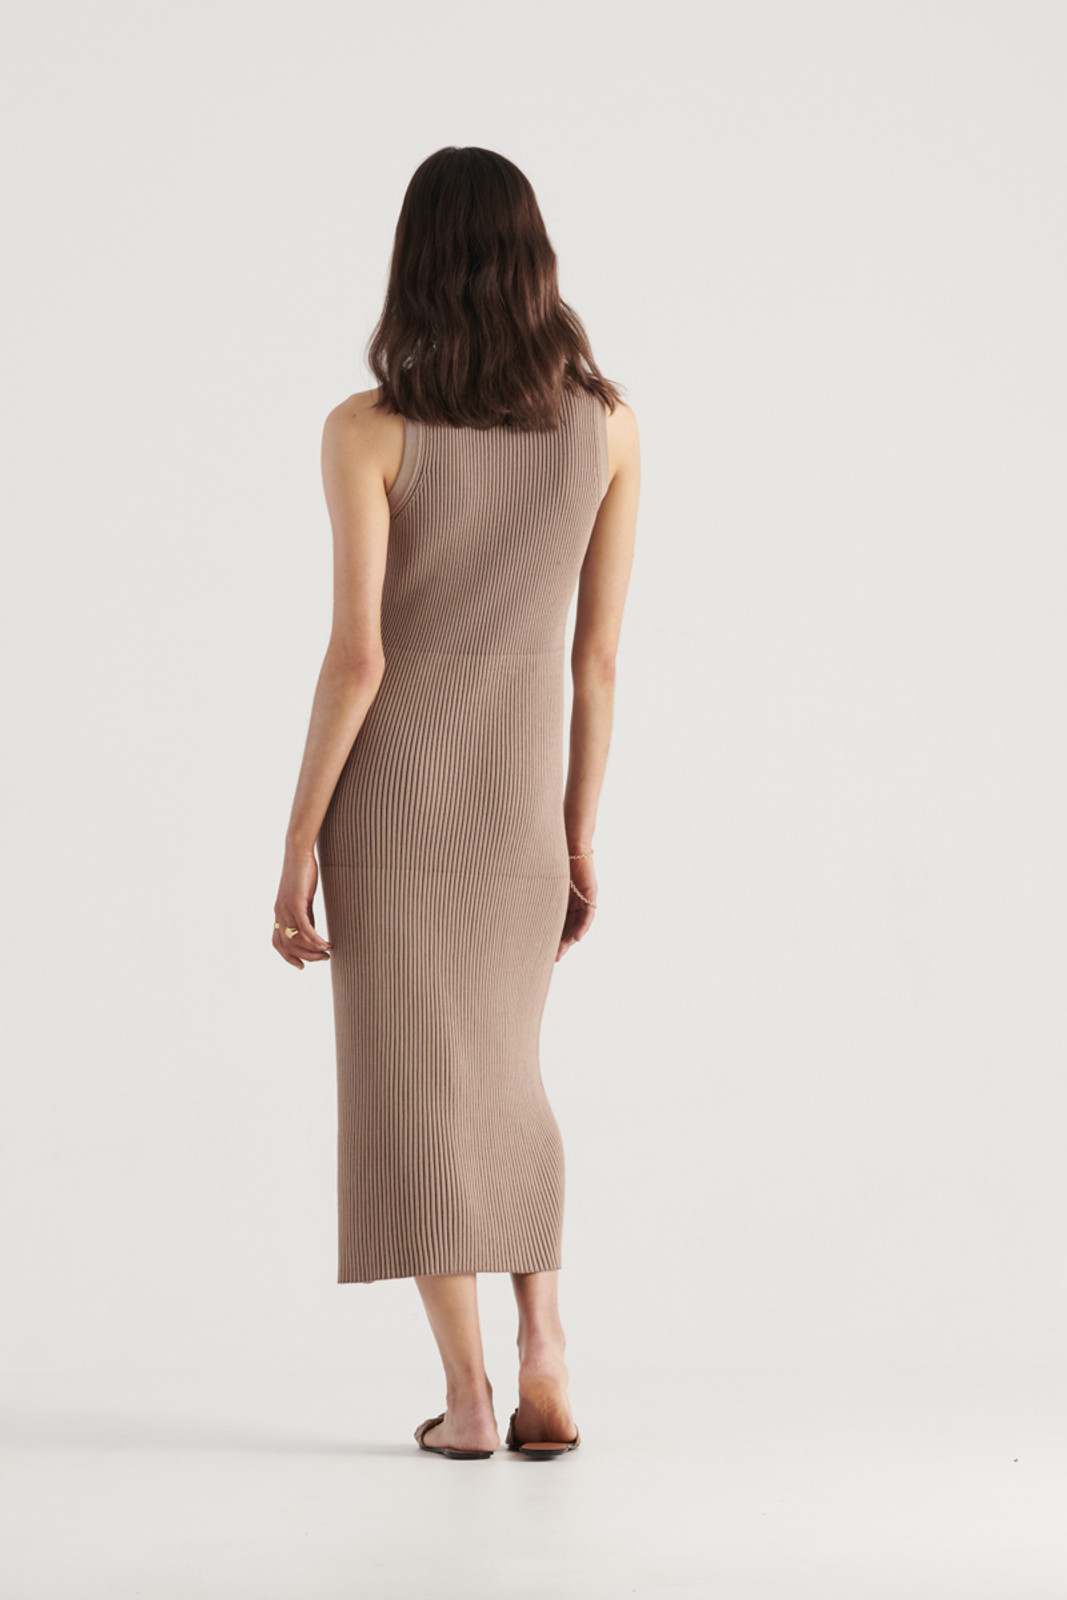 Elka Collective WomensBowie Knit Dress Taupe  2